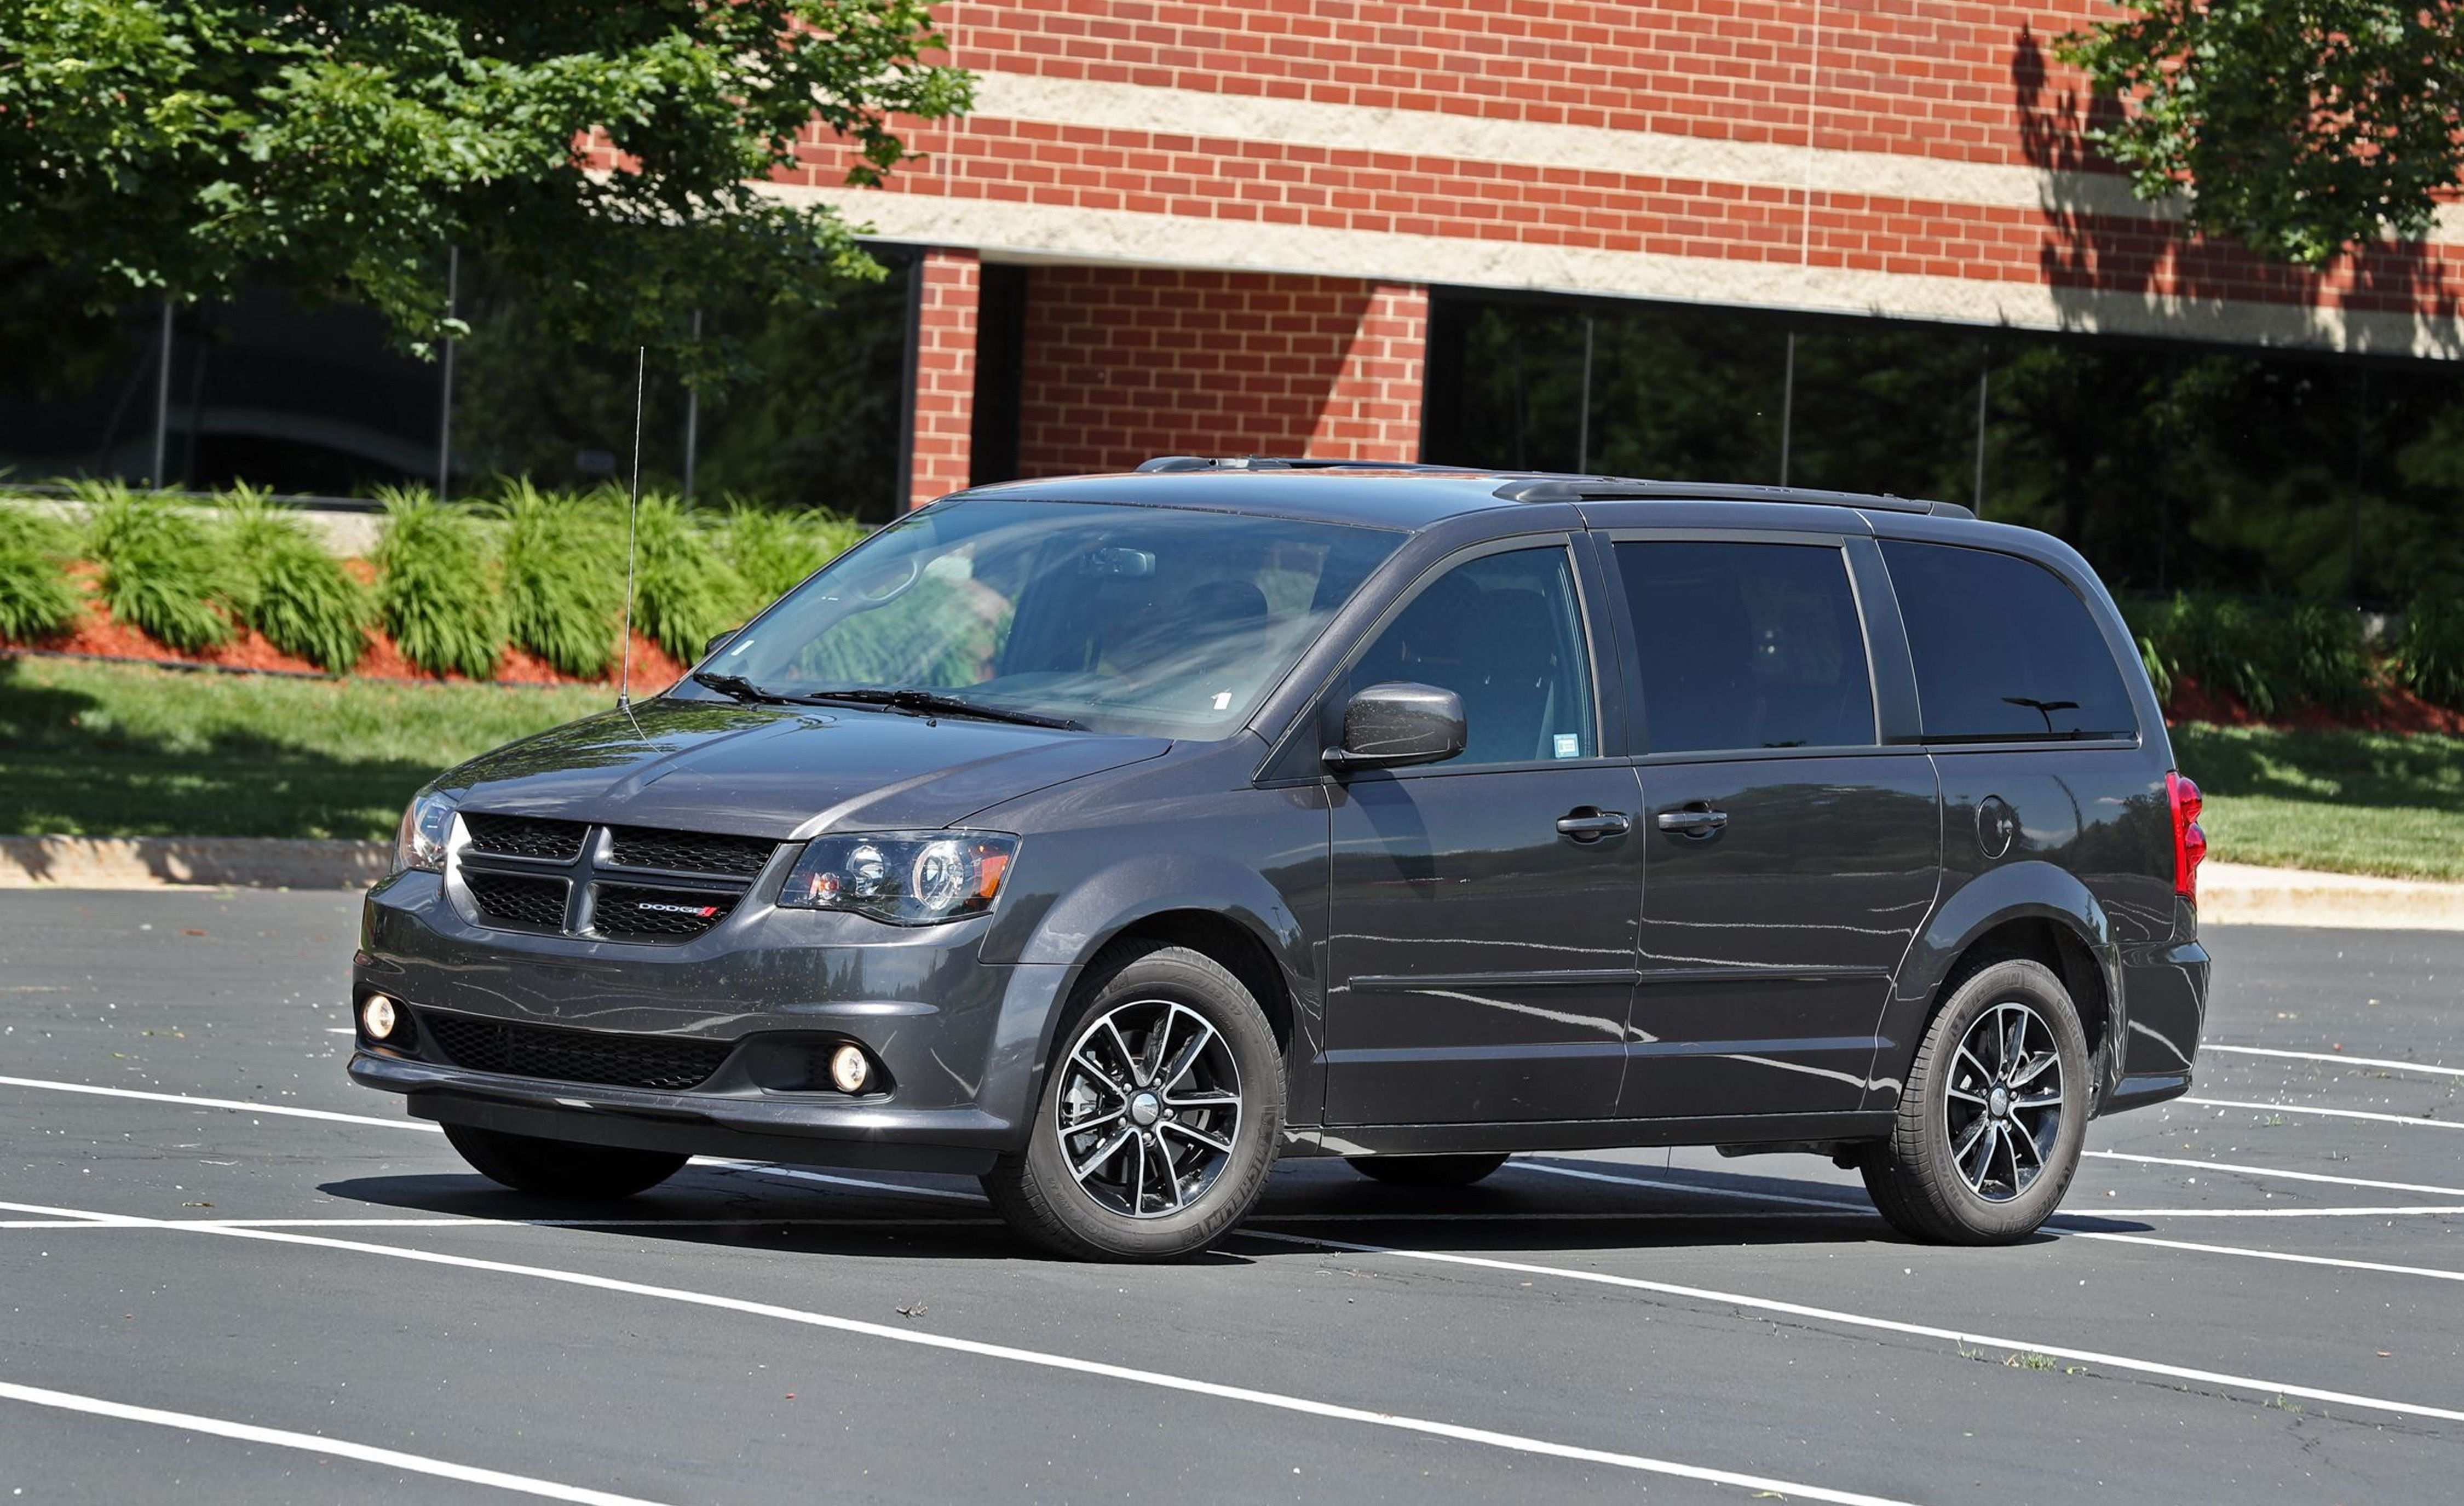 39 Best Review New 2019 Dodge Caravan Gt Overview And Price Exterior and Interior by New 2019 Dodge Caravan Gt Overview And Price